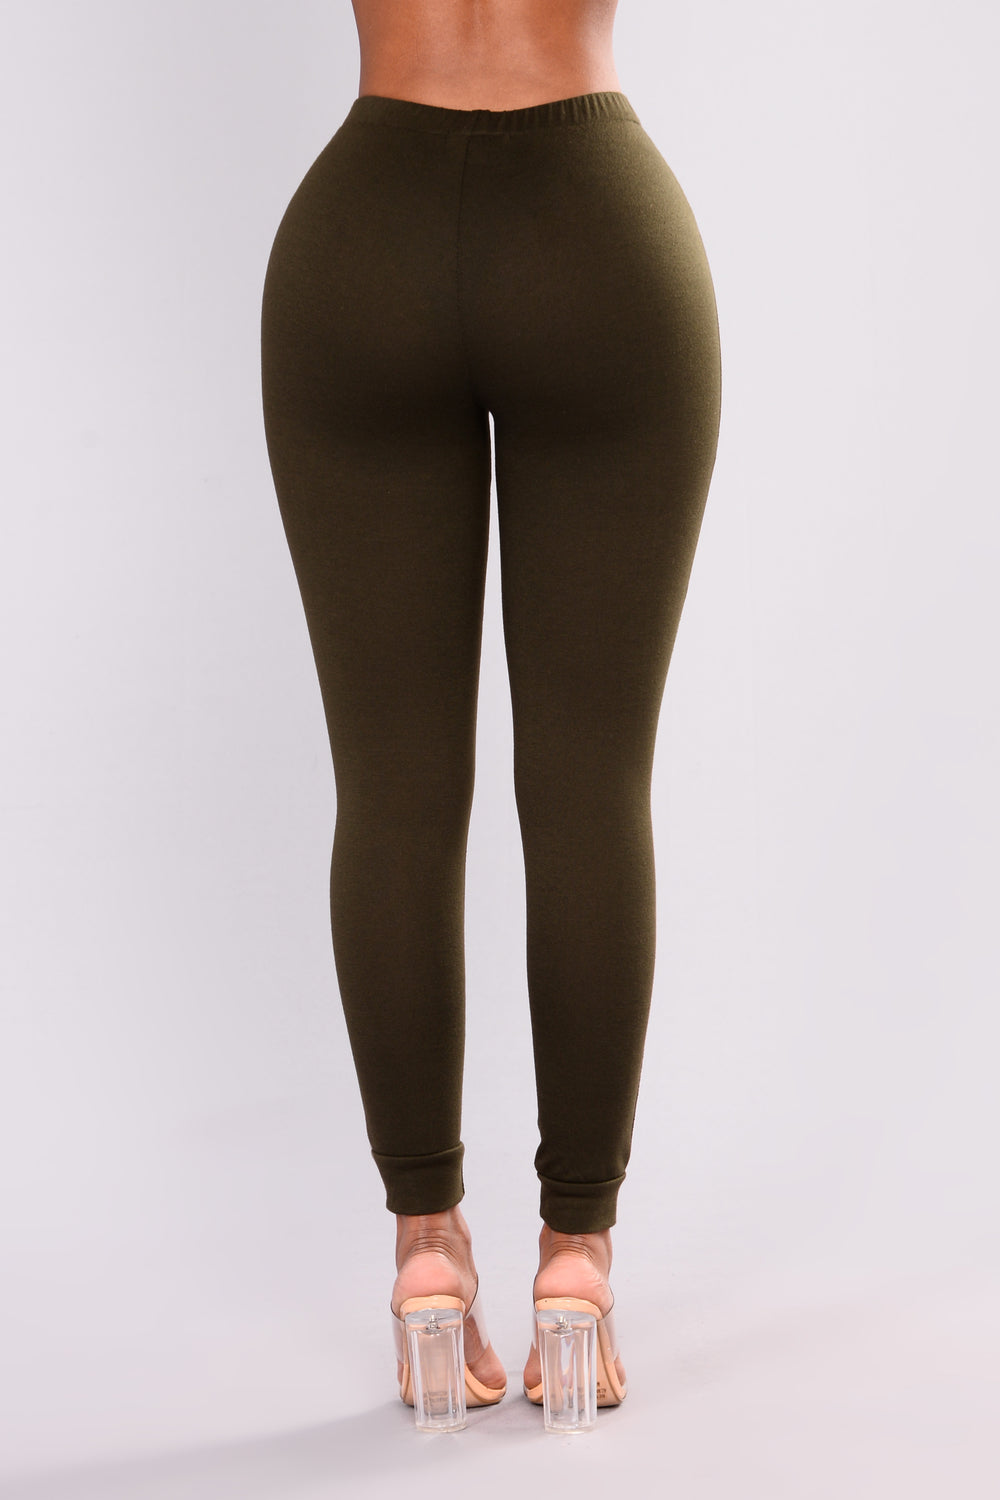 Distressed Terry Leggings - Olive